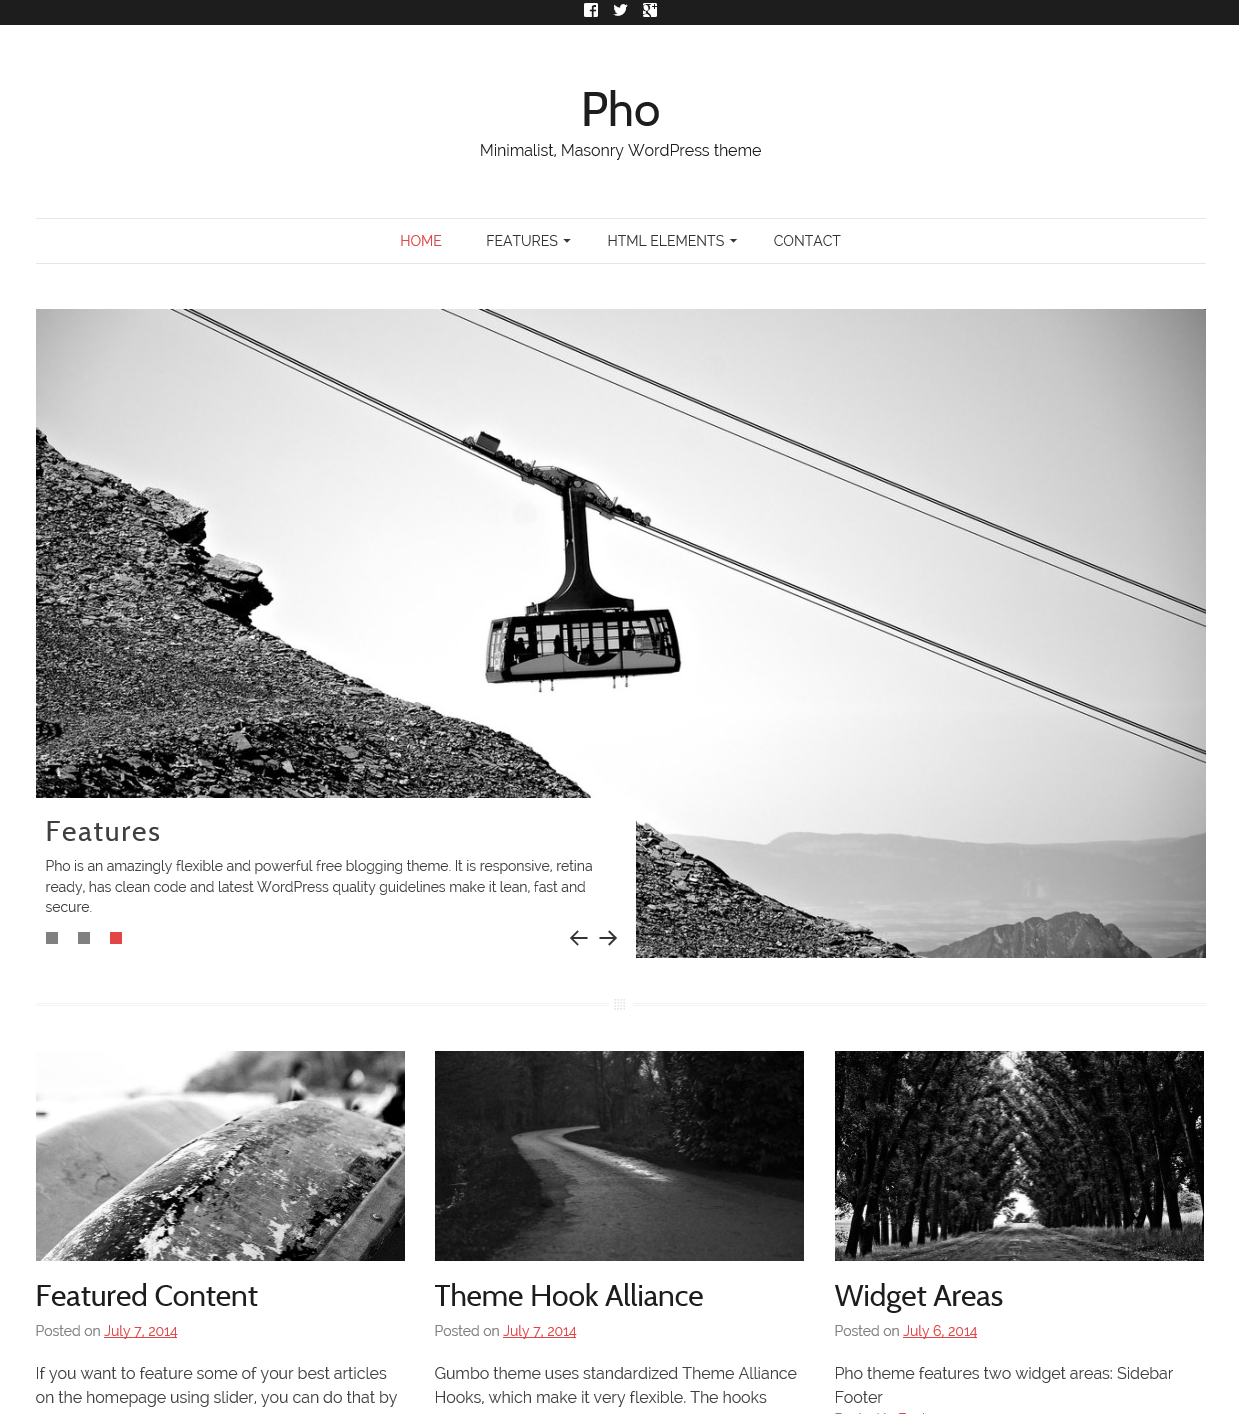 Pho minimalist masonry wordpress theme thematosoup for Minimalist homepage